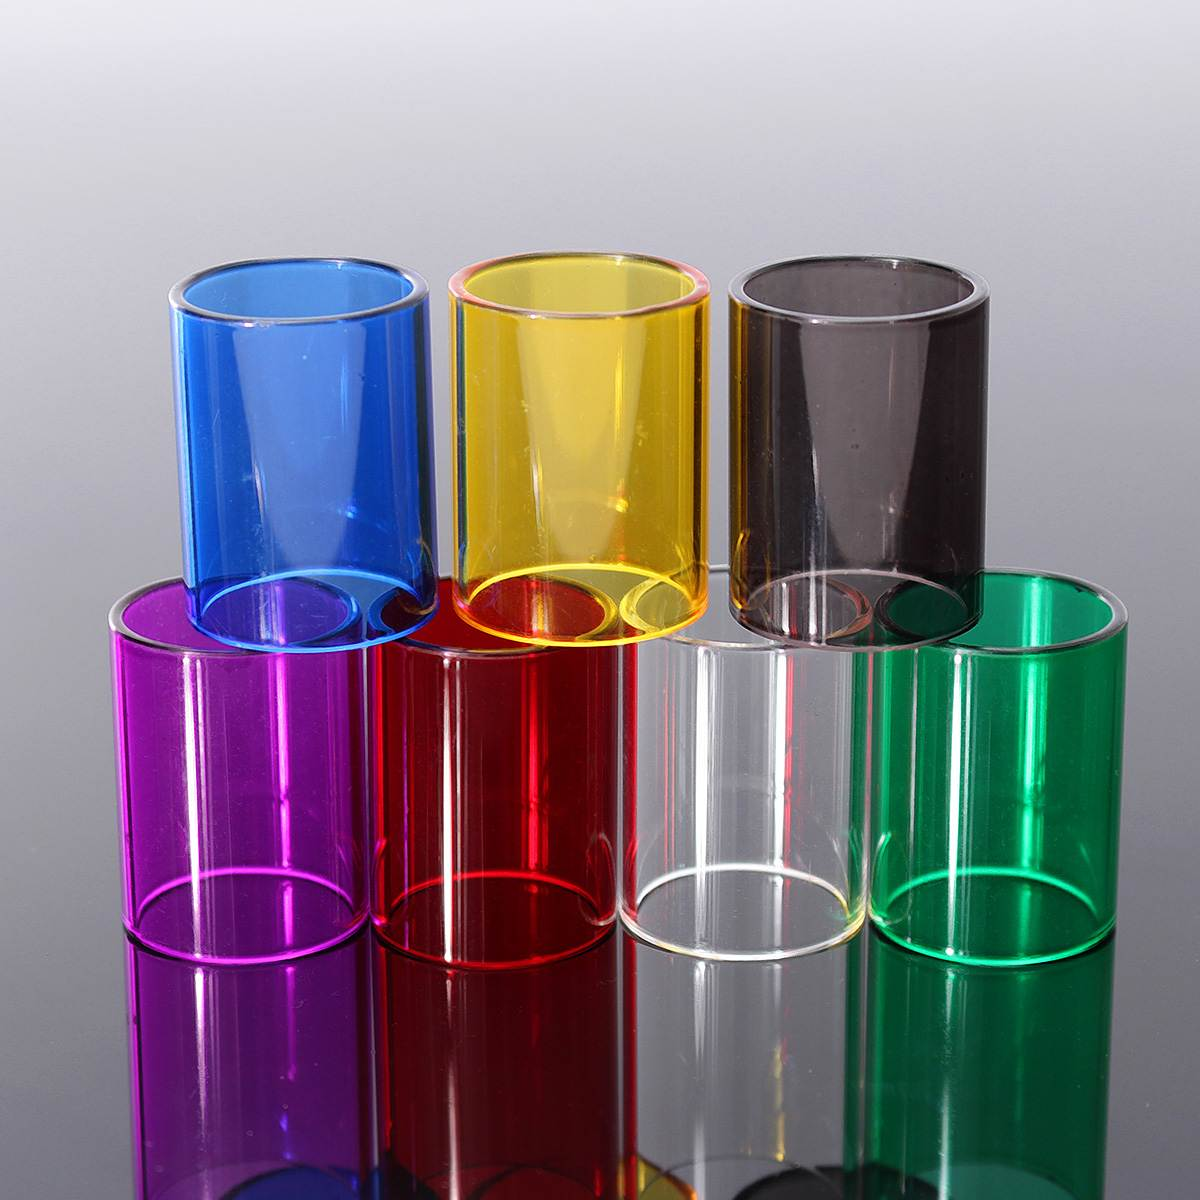 7abf392053 22mm Replacement Transparent Pyrex Glass Tube Sleeve For Joyetech Ultimo  Tank Transparent Black Purple Yellow Red